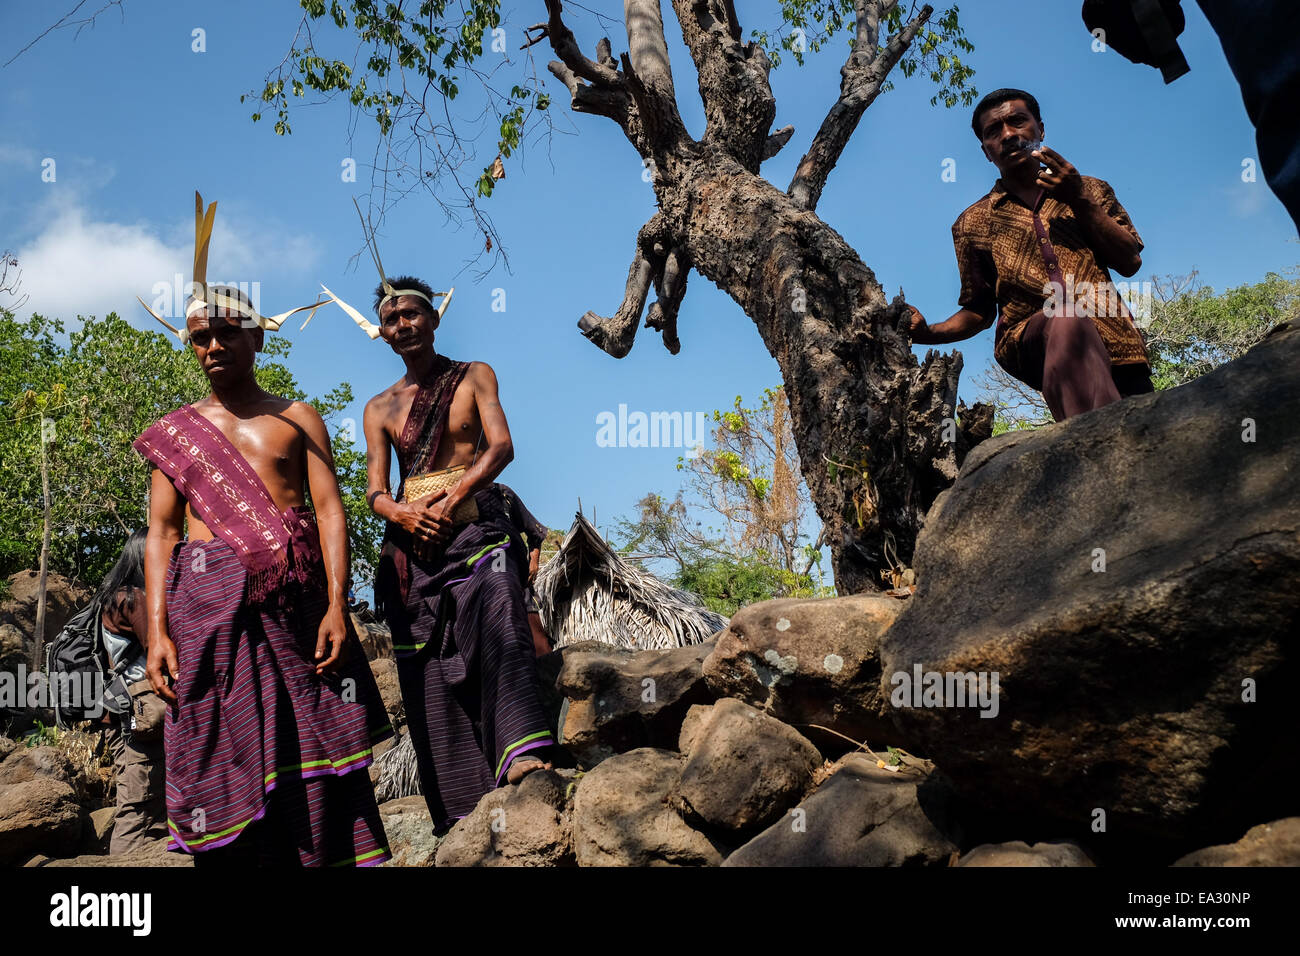 Local people in traditional costumes at Lamagute village, Lembata Island, Indonesia. - Stock Image